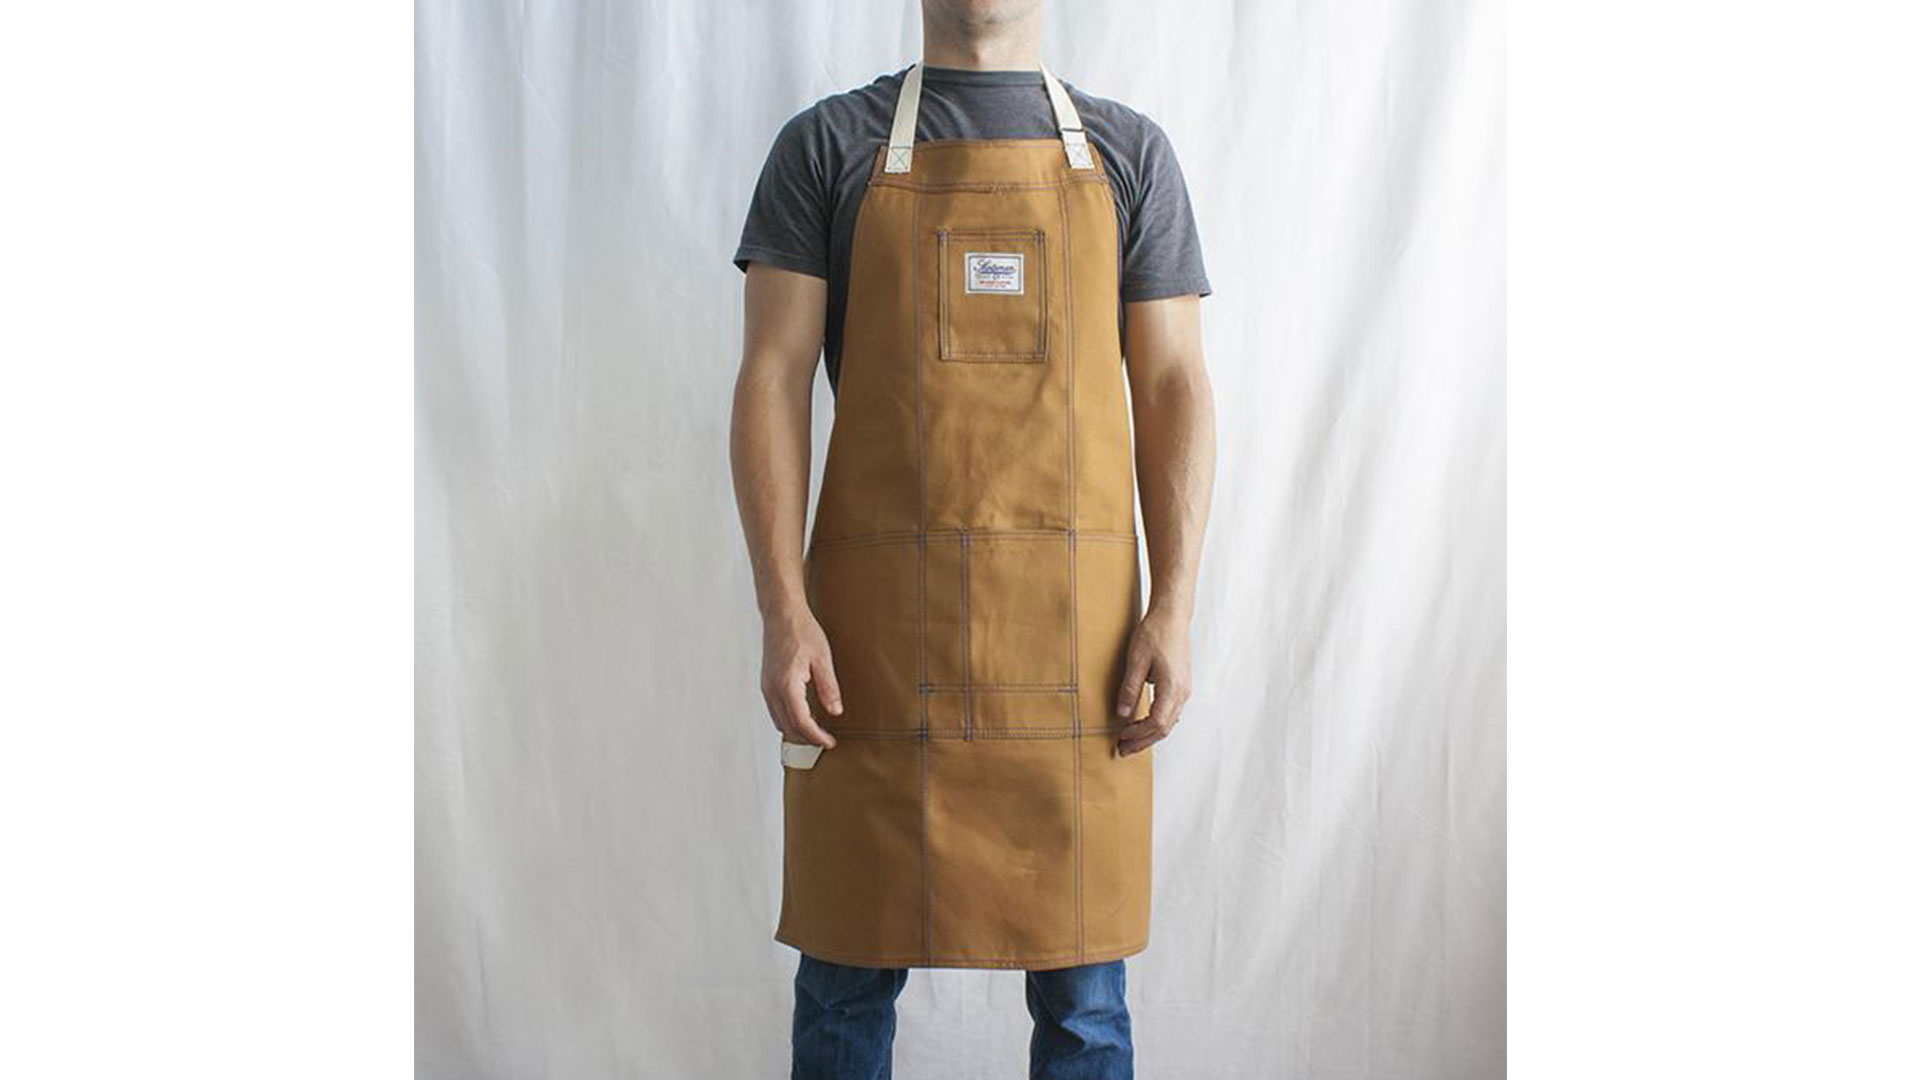 Erin and Ben Napier American Products Apron